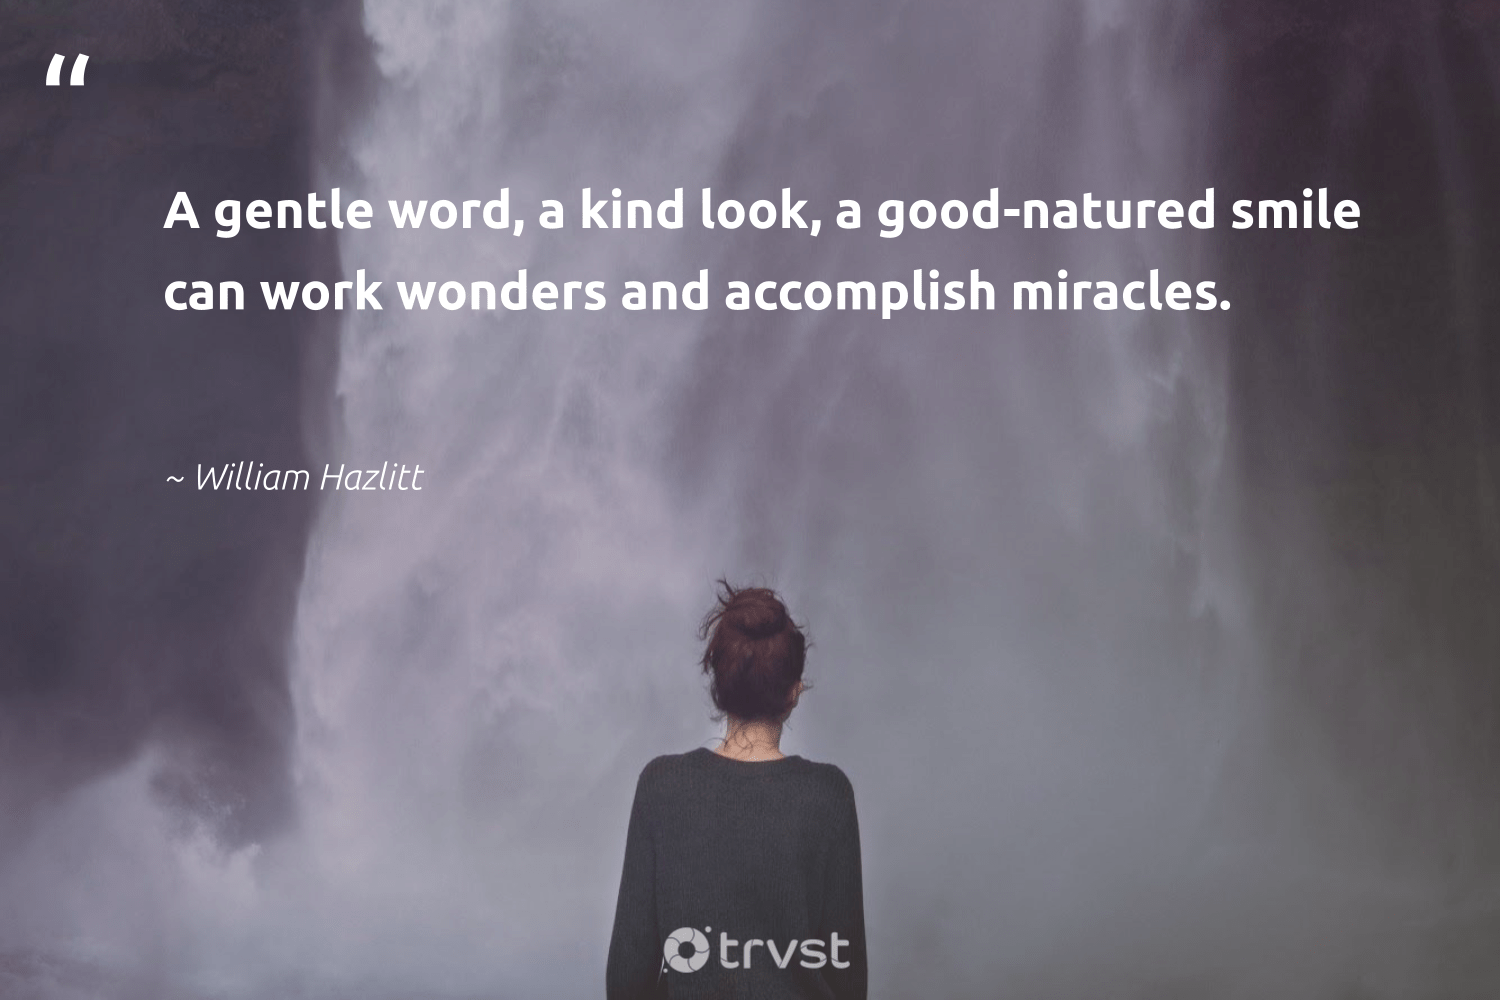 """A gentle word, a kind look, a good-natured smile can work wonders and accomplish miracles.""  - William Hazlitt #trvst #quotes #futureofwork #collectiveaction #nevergiveup #dosomething #softskills #socialchange #begreat #thinkgreen #beinspired #dogood"